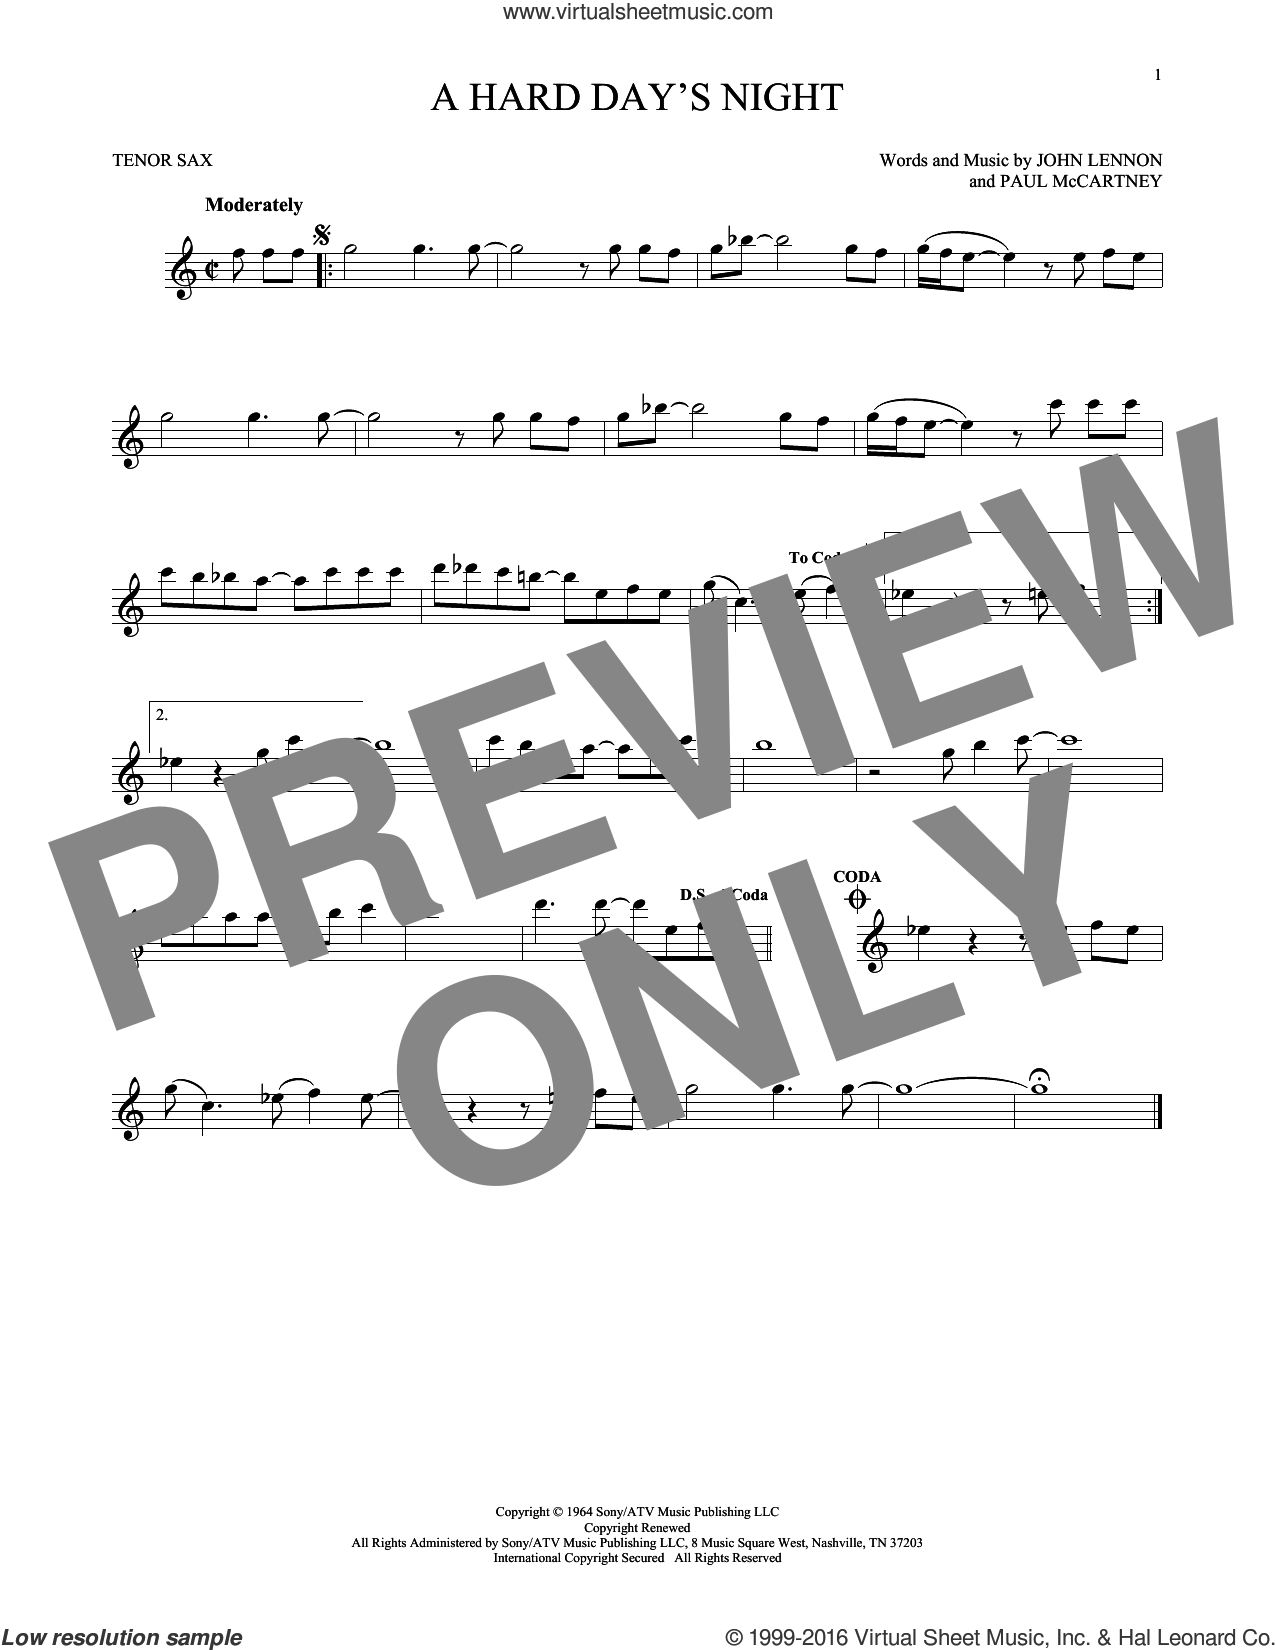 A Hard Day's Night sheet music for tenor saxophone solo by The Beatles, John Lennon and Paul McCartney, intermediate skill level